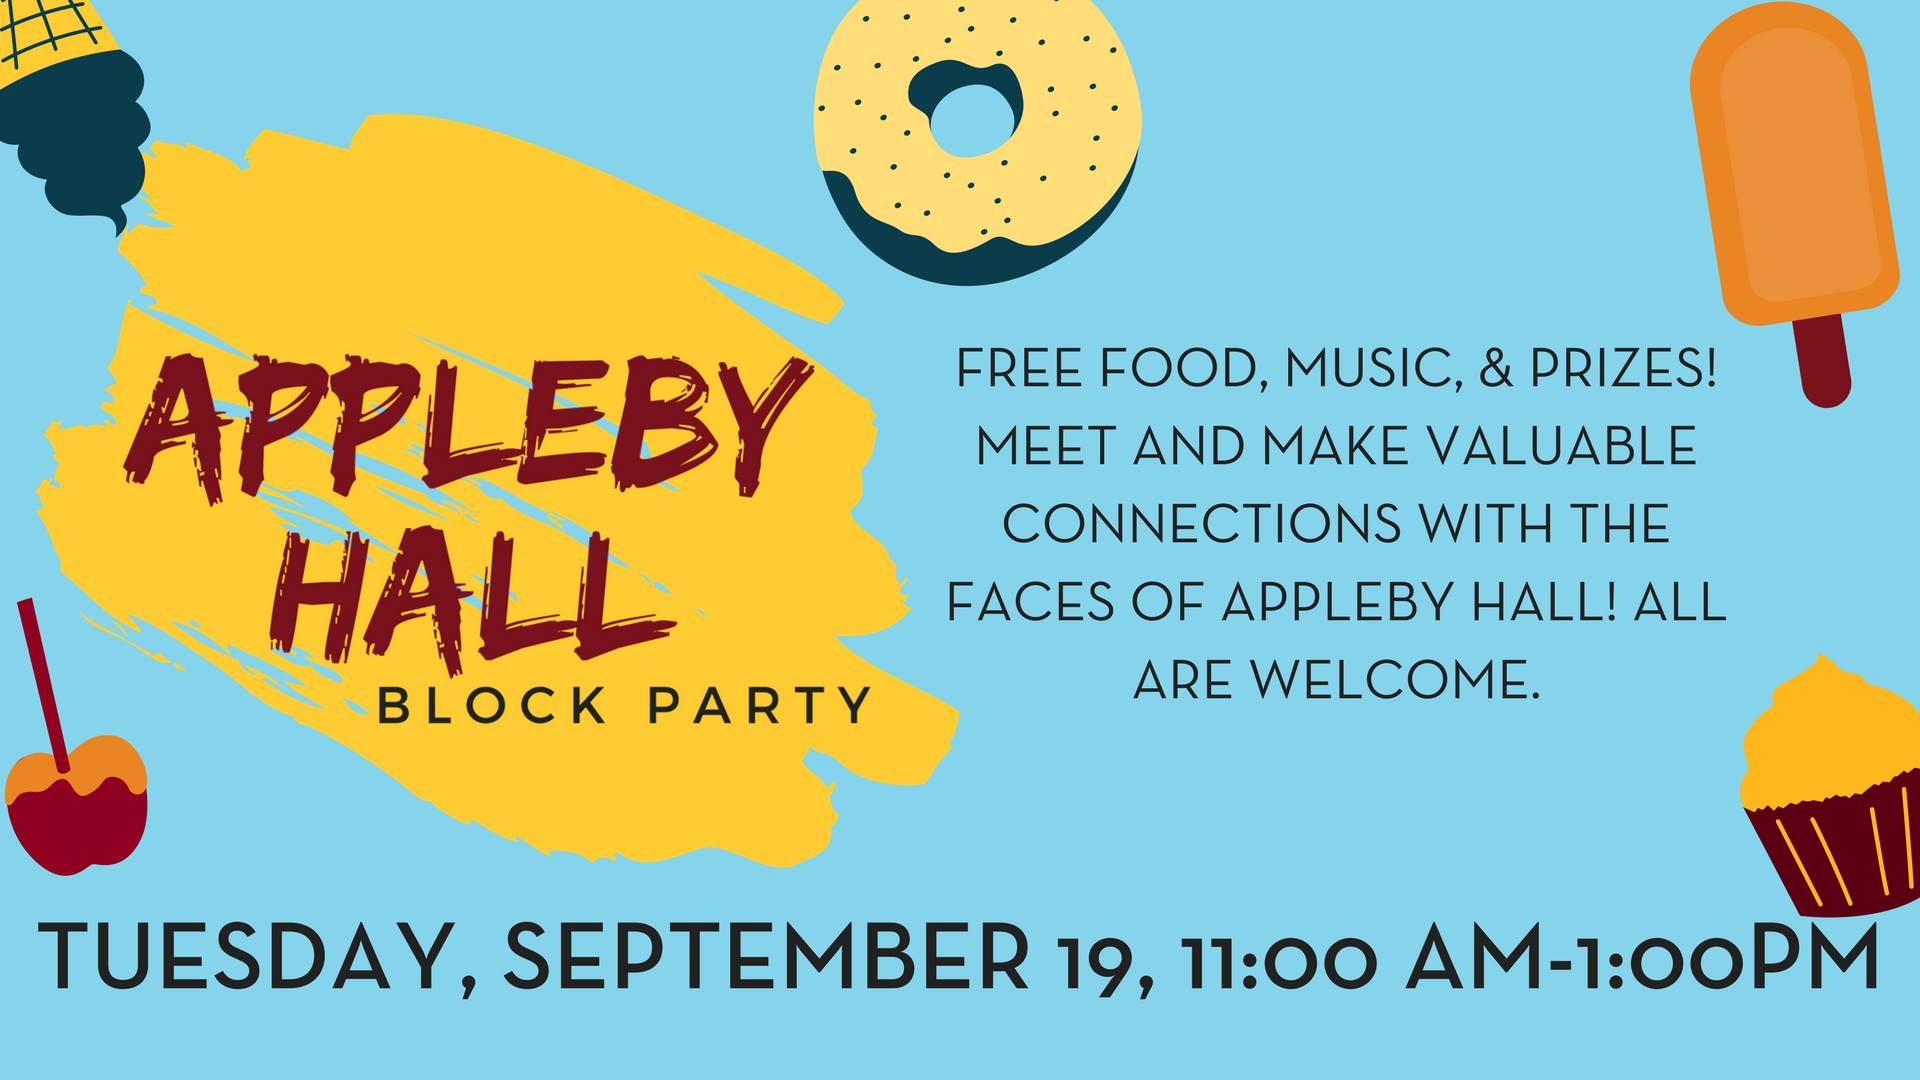 Appleby Hall Block Party Poster